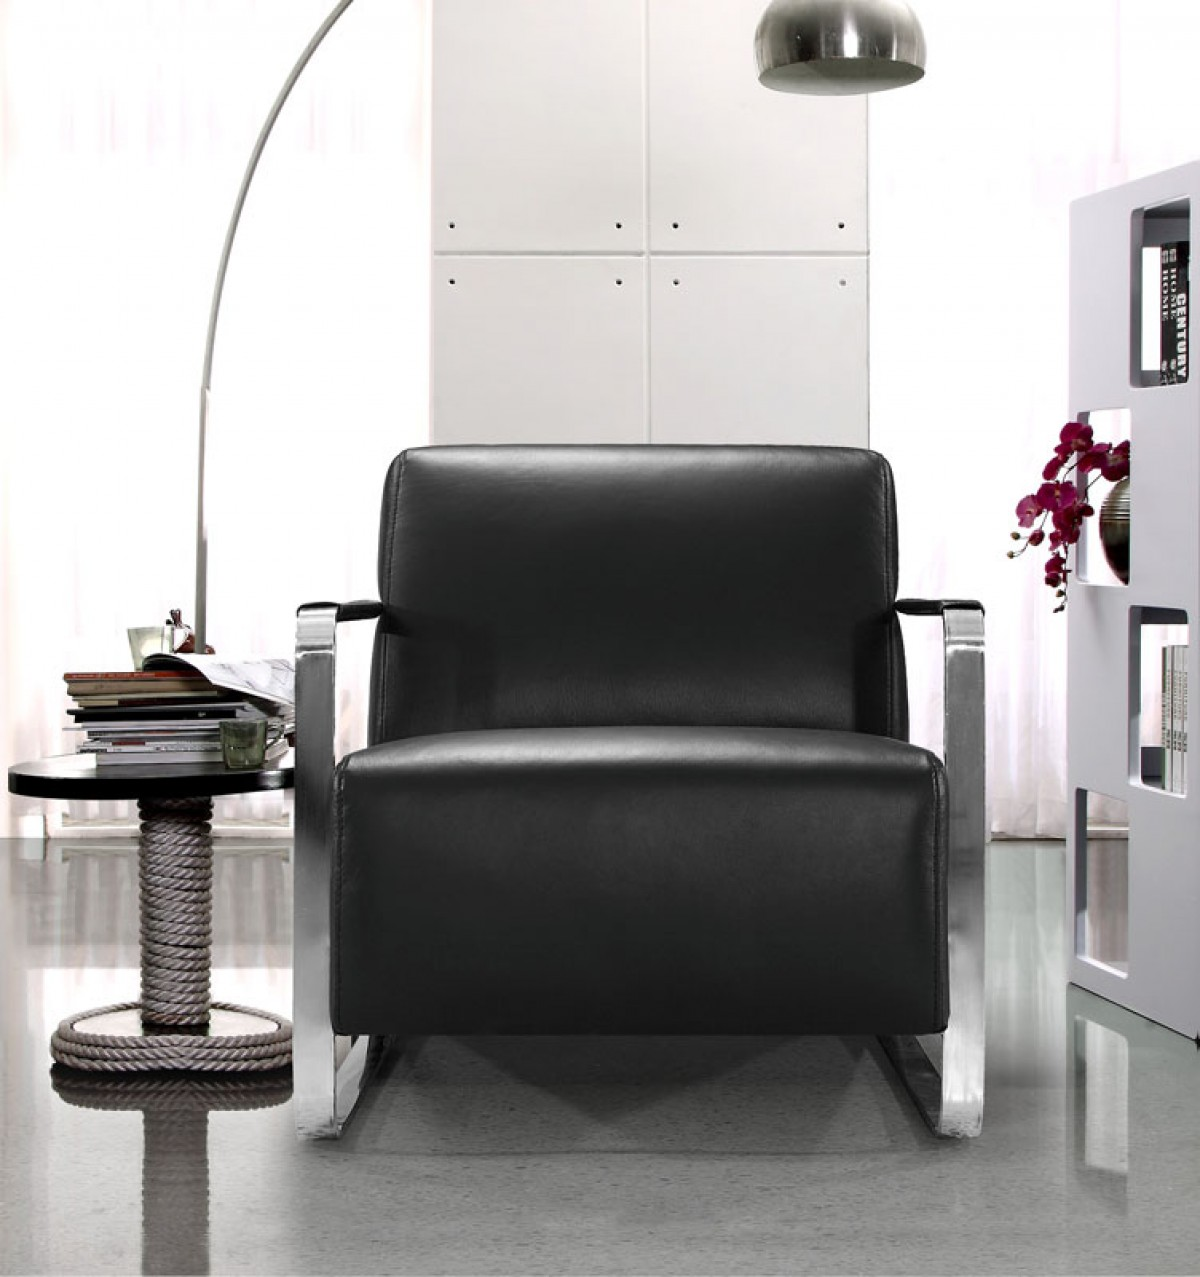 Modern Black Leather Low Profile Lounge Chair - Click Image to Close